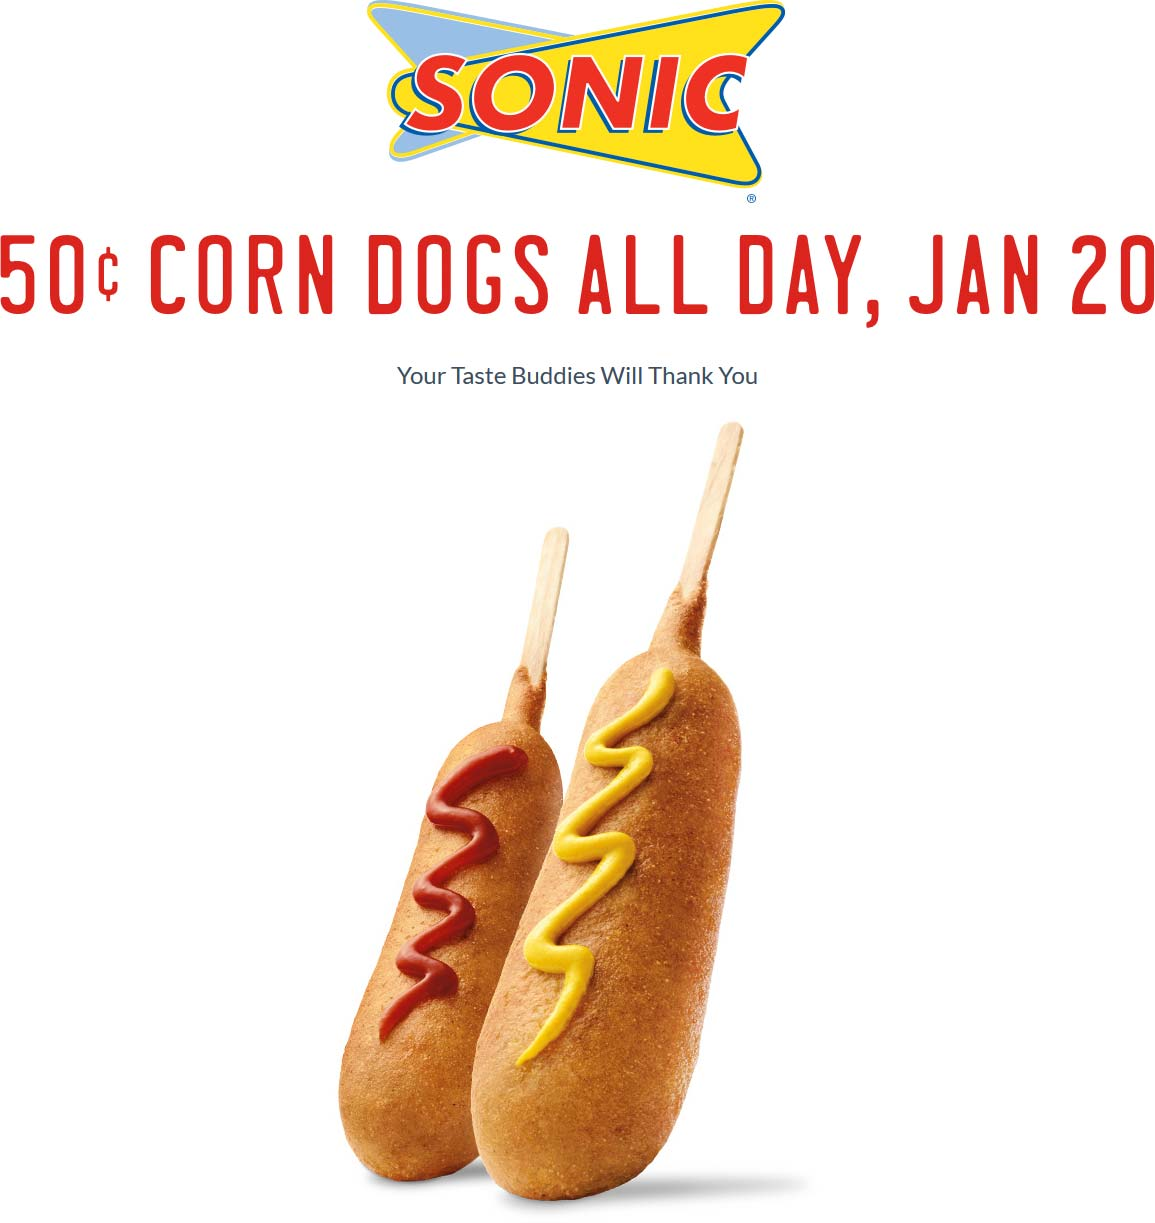 Sonic Drive-In Coupon May 2018 .50 cent corn dogs Wednesday at Sonic Drive-In